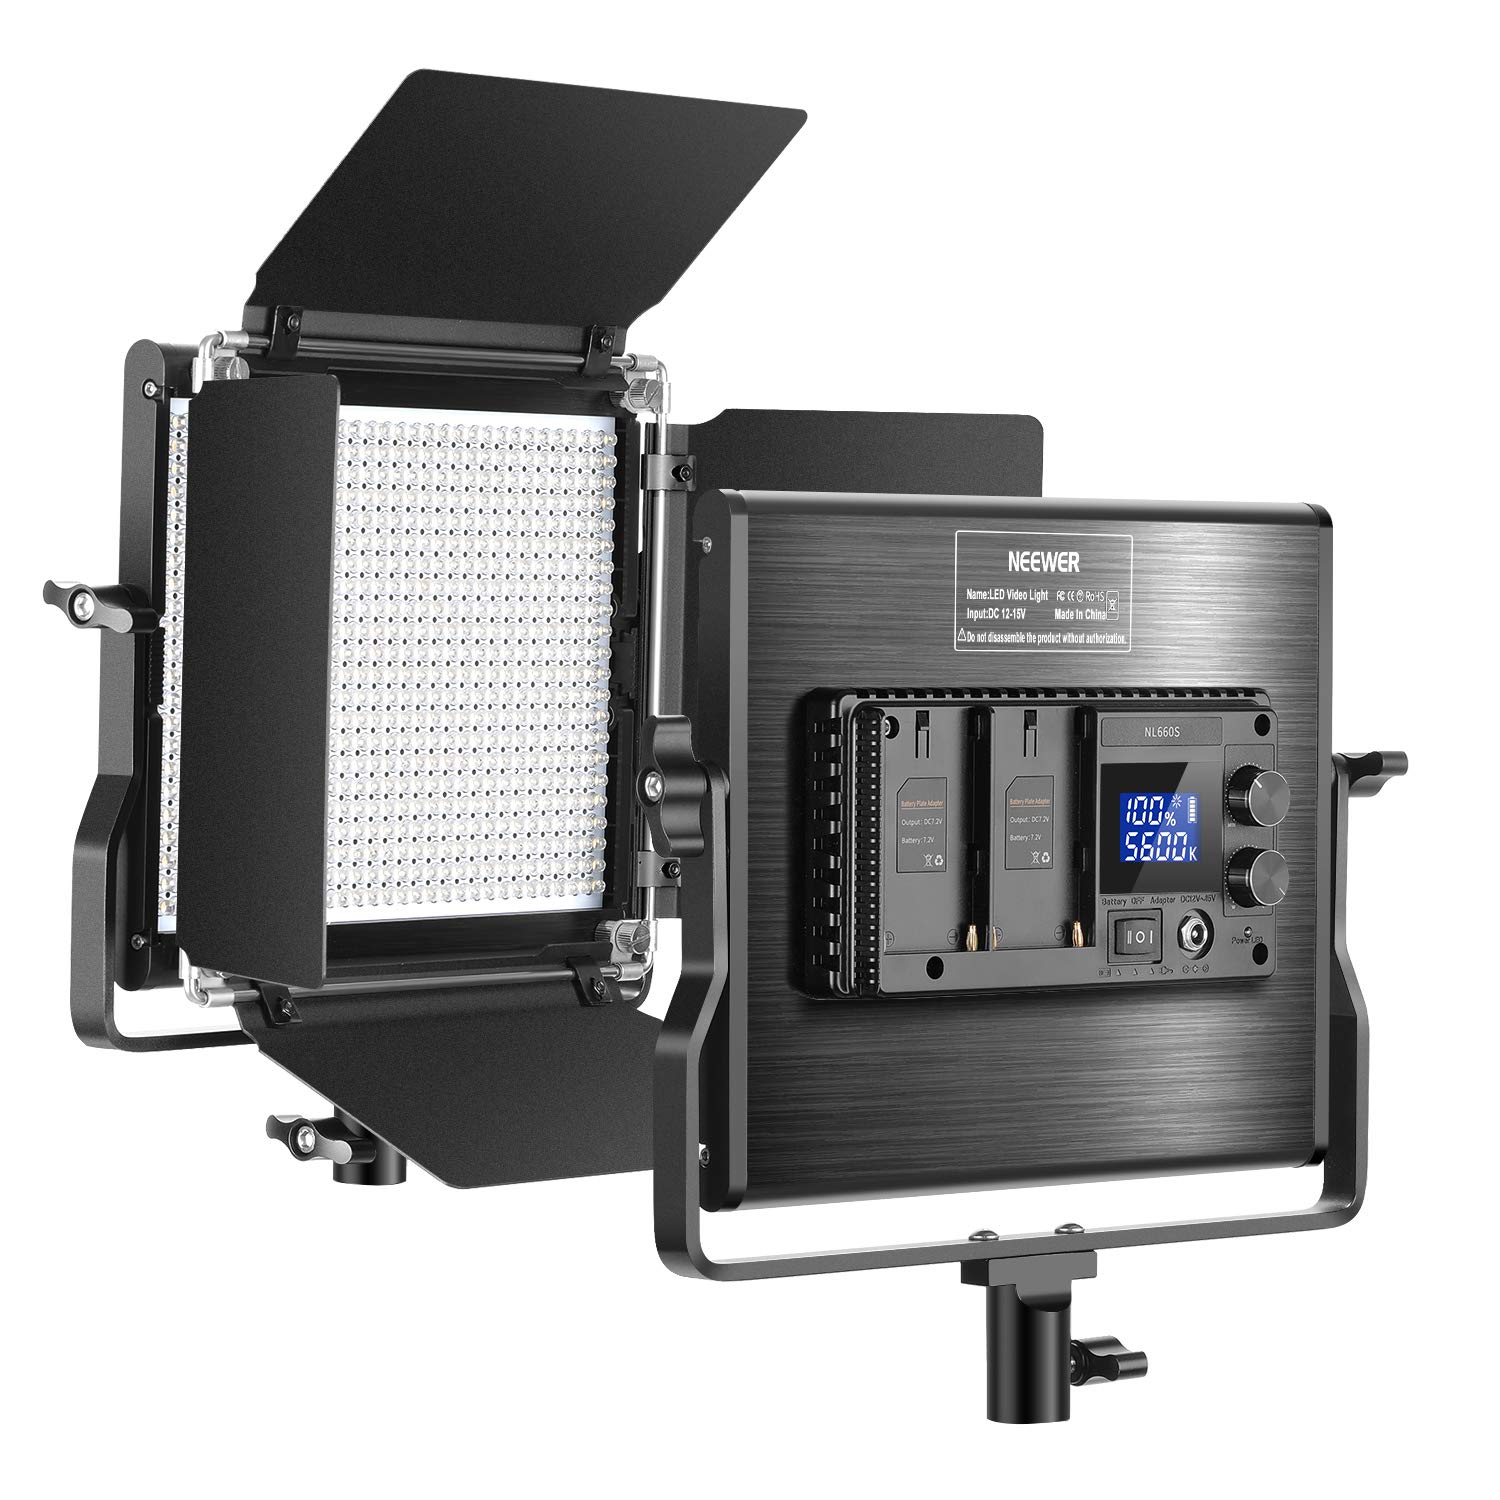 Neewer Upgraded 660 LED Video Light Dimmable Bi-Color LED Panel with LCD Screen for Studio, YouTube Video Shooting Product Photography, 660 Beads CRI 96+, Durable Metal with U Bracket and Barndoor by Neewer